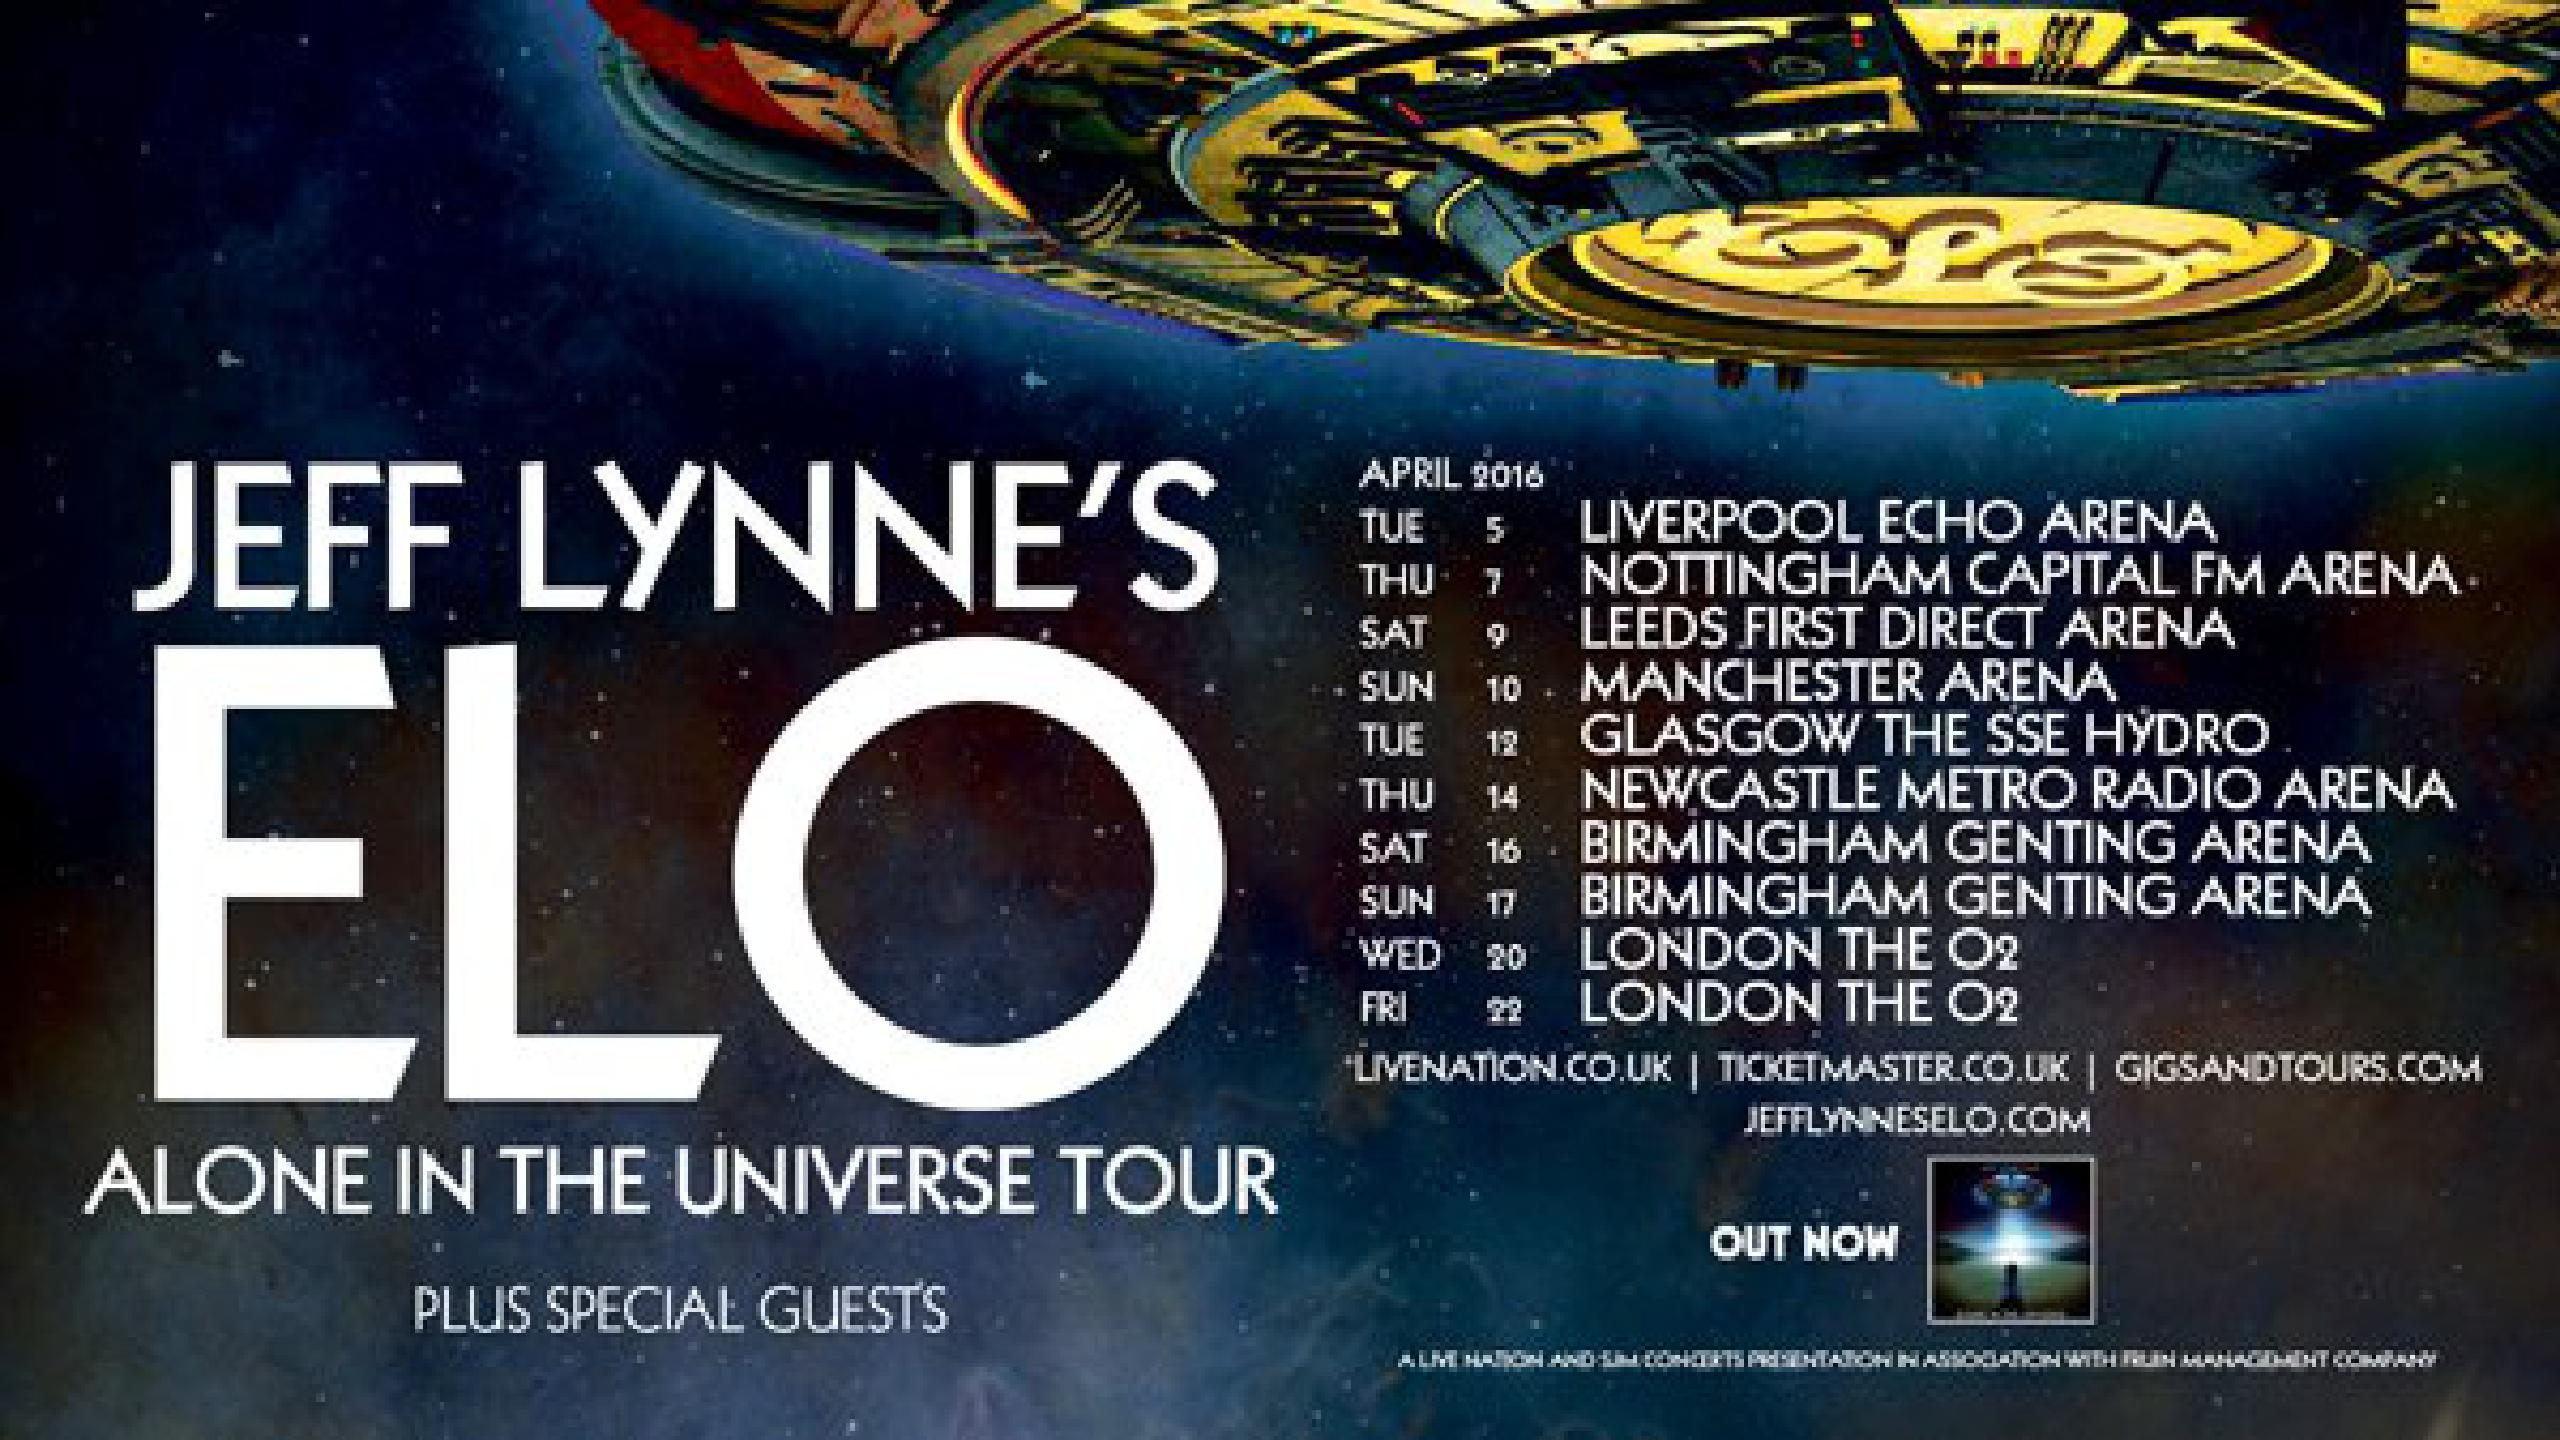 Elo Tour Dates 2020.Jeff Lynne Tour Dates 2019 2020 Jeff Lynne Tickets And